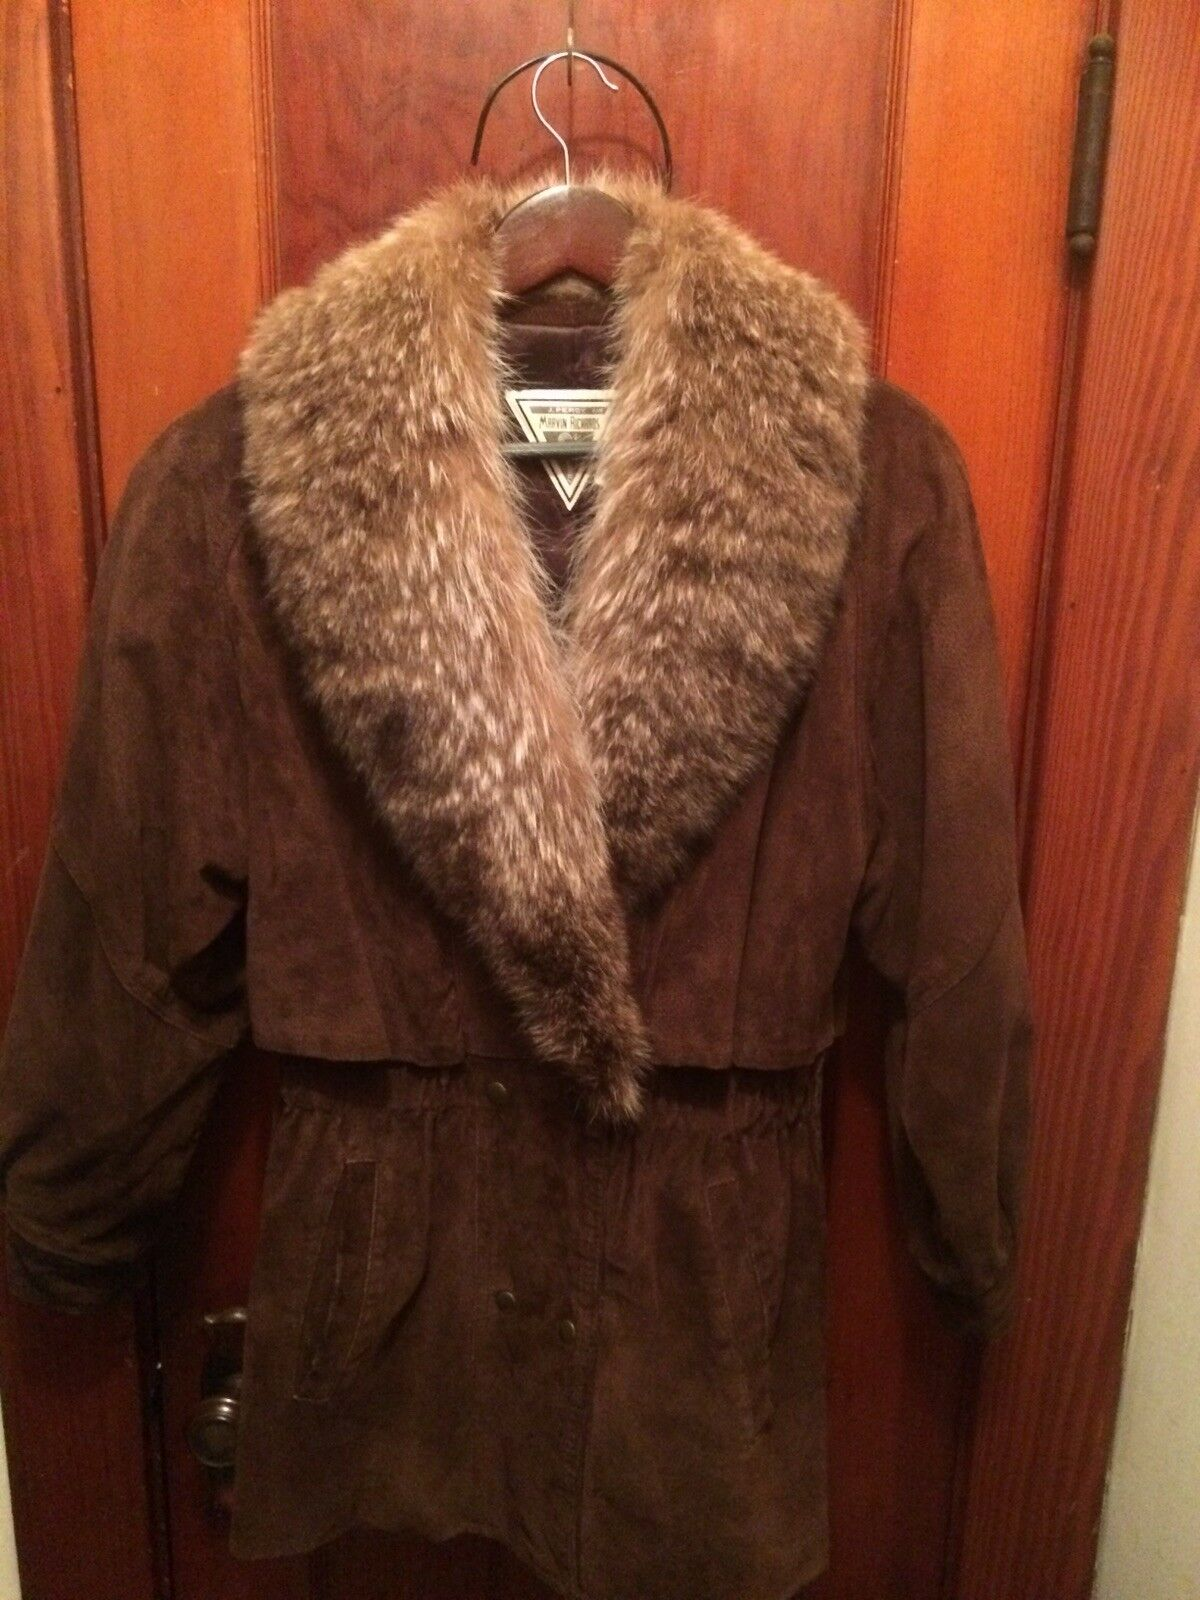 J Percy For Marvin Richards Leather Coat With Fur Trim Collar,